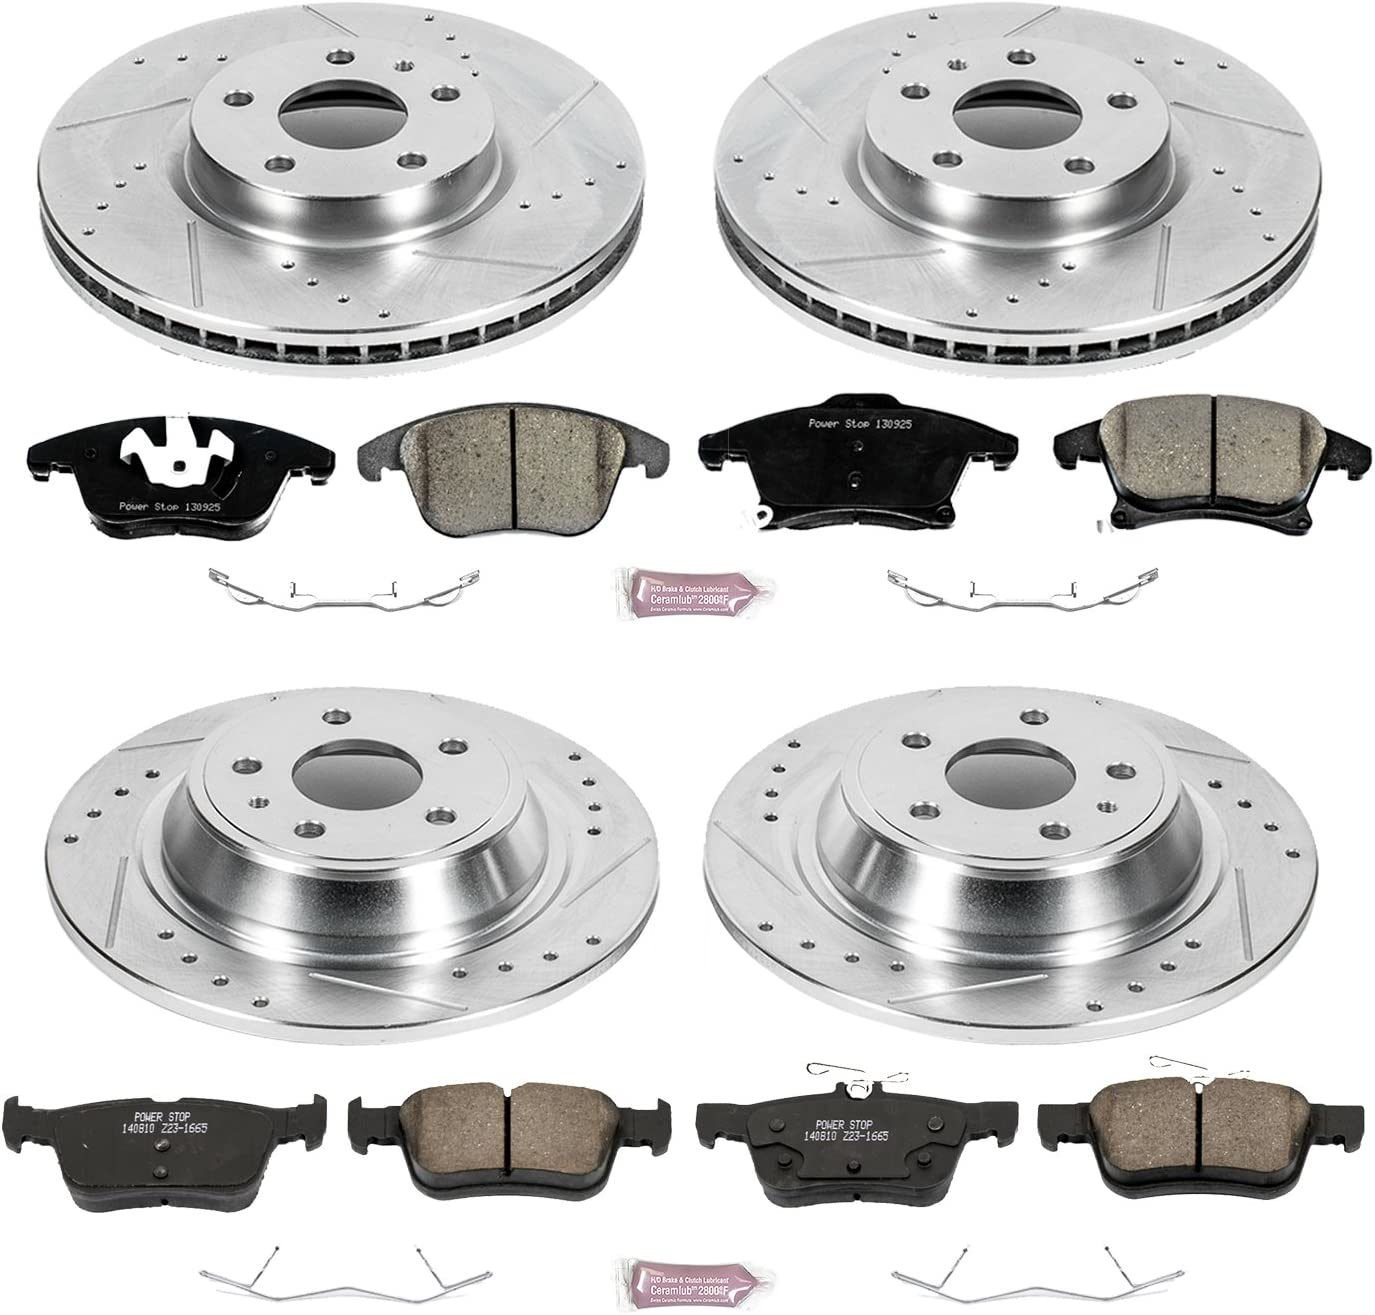 Power Stop K7898 Z23 Evolution Sport Rear Kit Rotors and Carbon-Fiber Ceramic Brake Pads